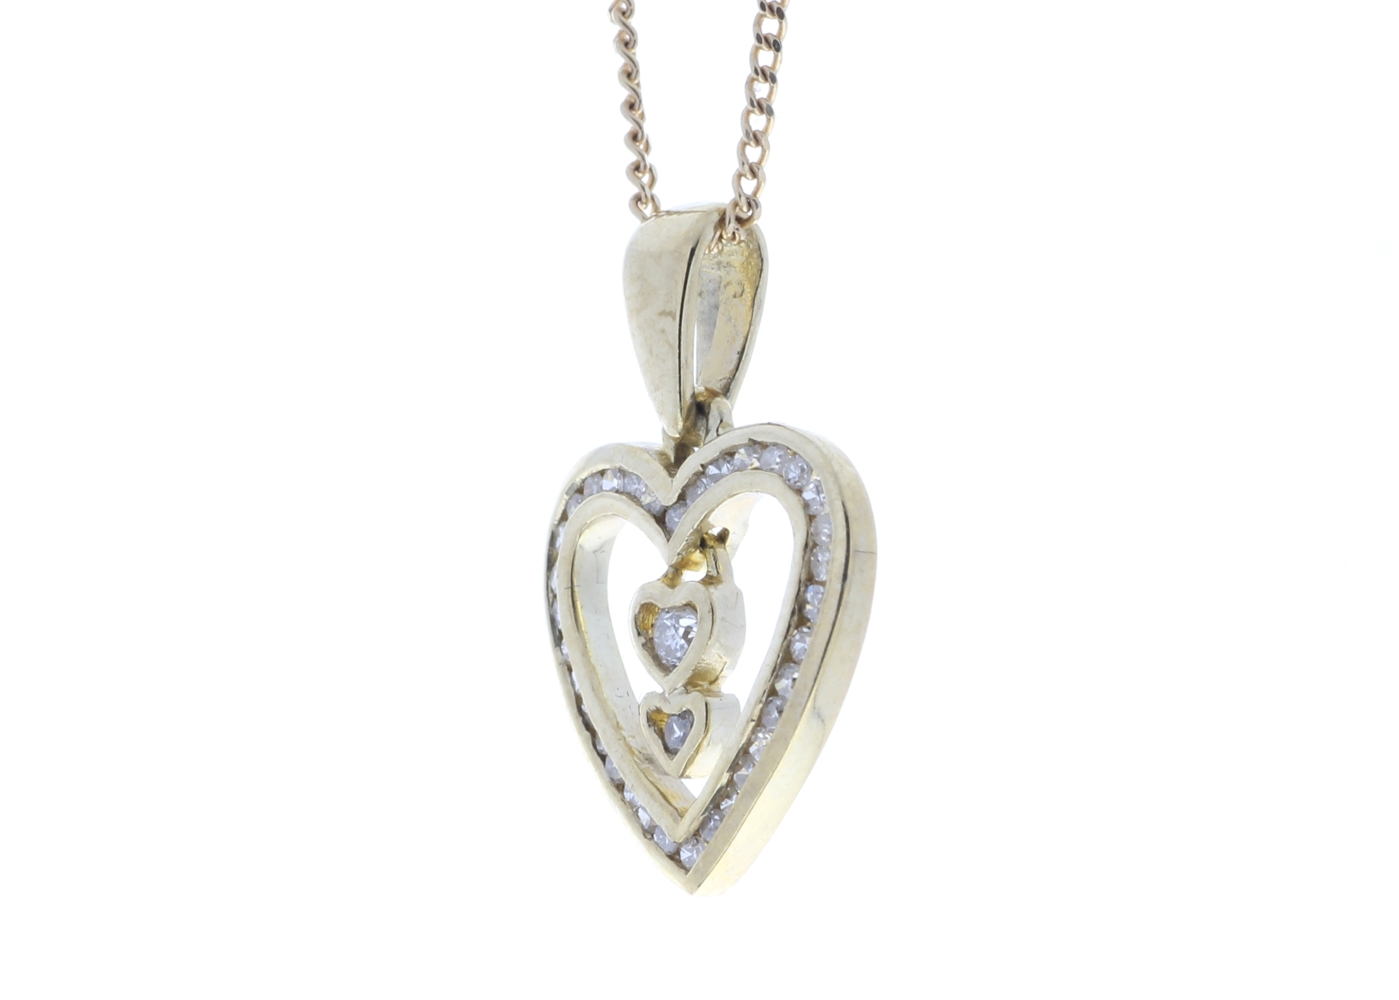 9ct Yellow Gold Heart Pendant 0.21 Carats - Image 4 of 5